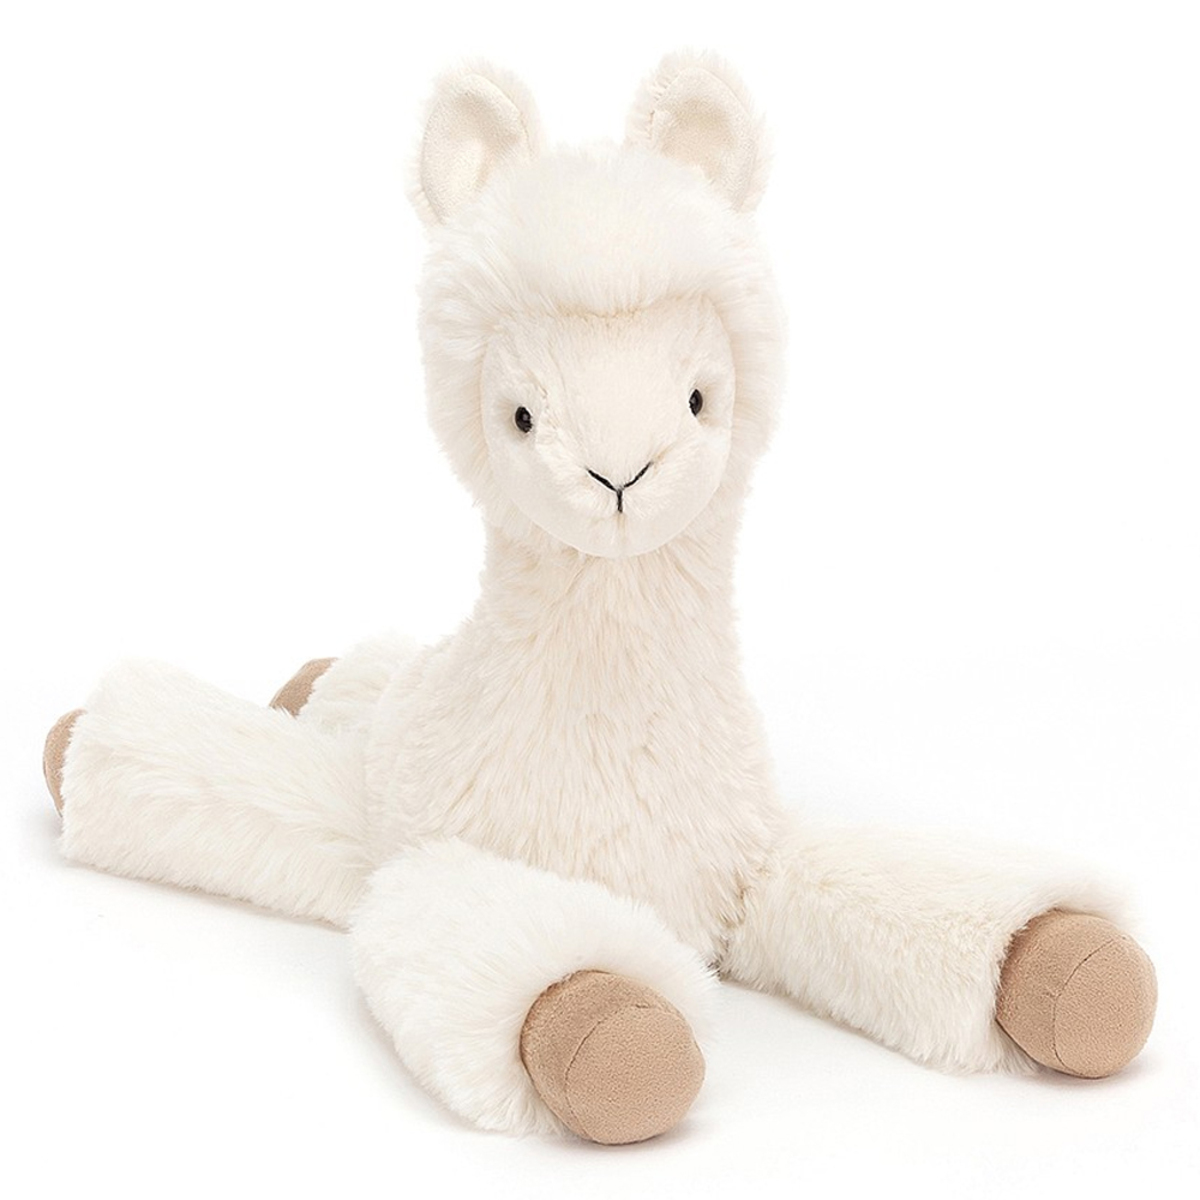 Peluche Dillydally Llama - Medium